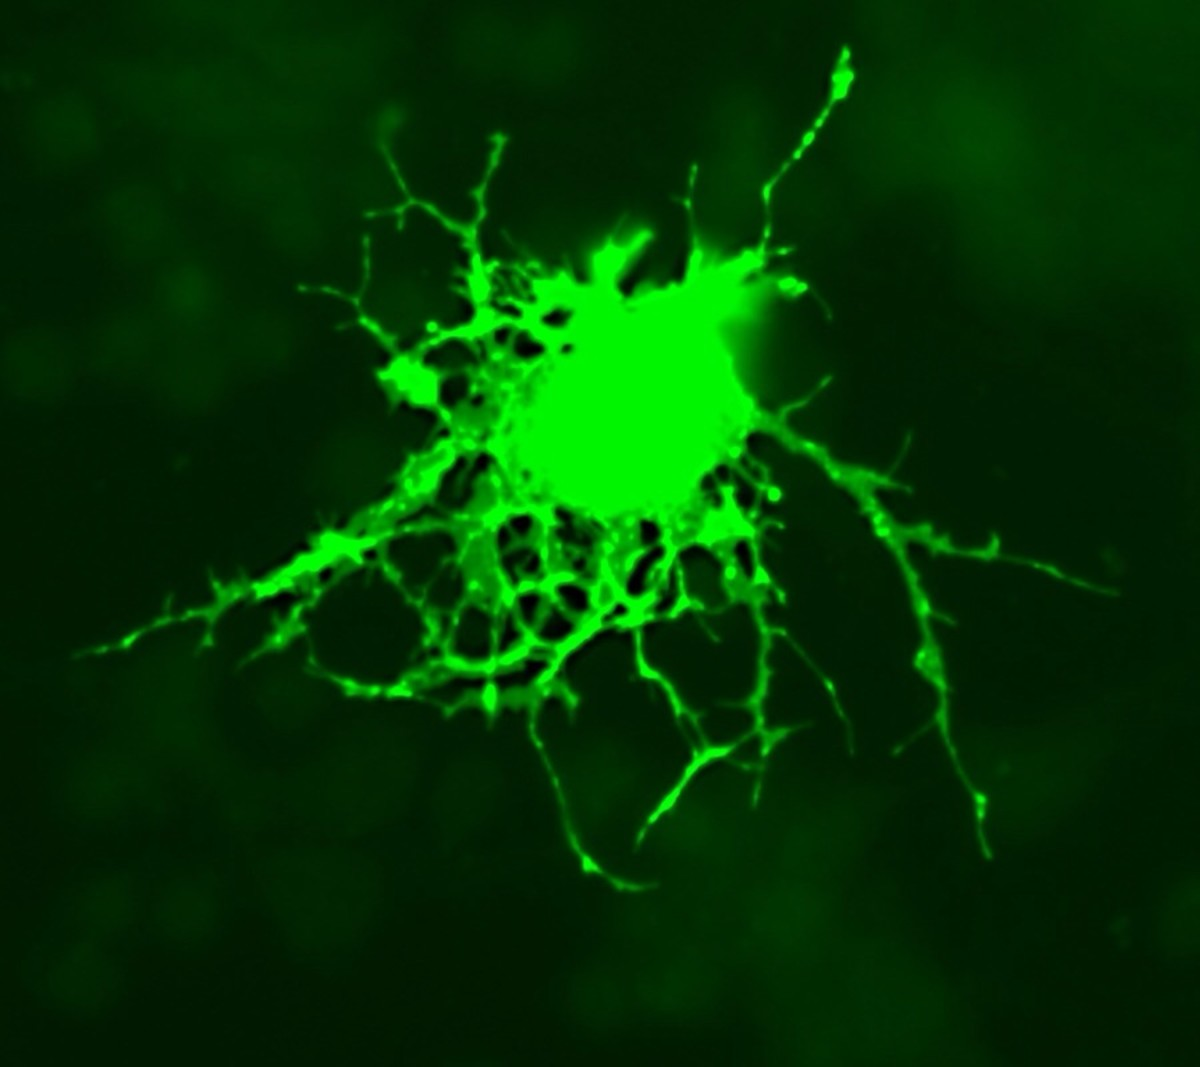 A green fluorescent protein has been added to this oligodendrocyte. Oligodendrocytes make myelin and are destroyed in multiple sclerosis.